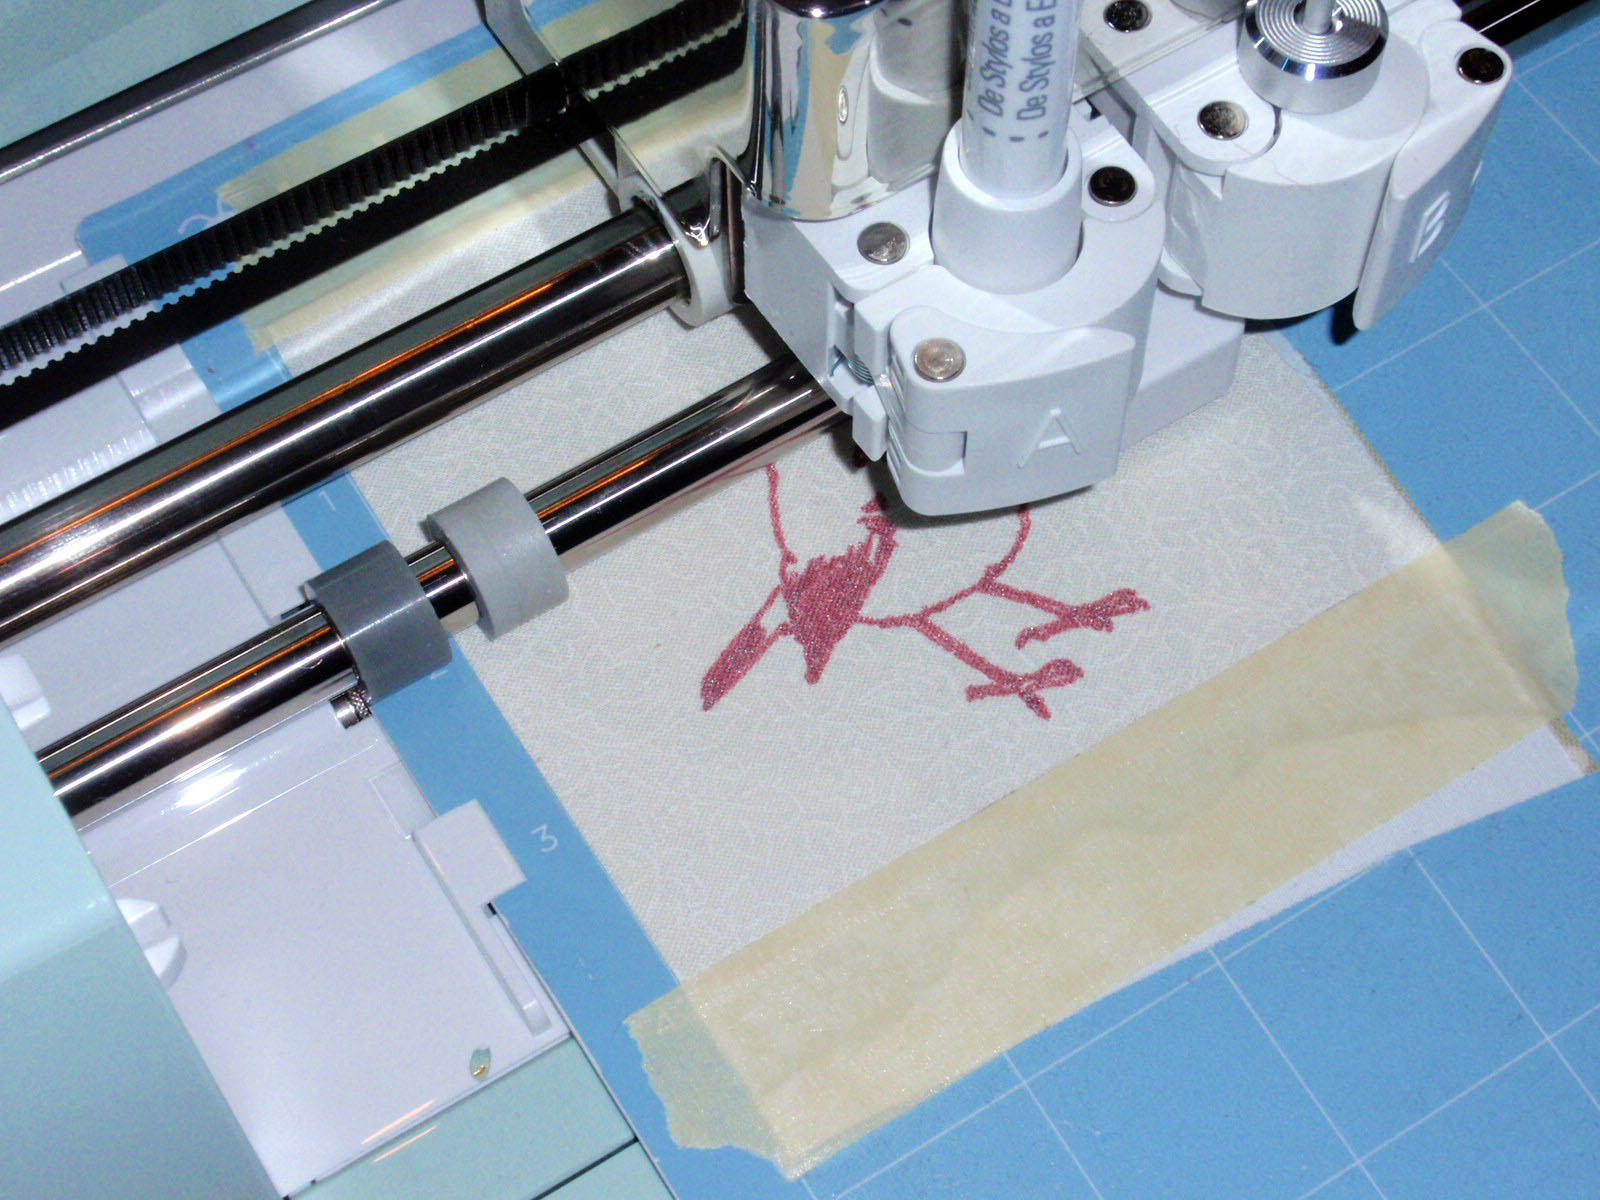 machine pen on fabric